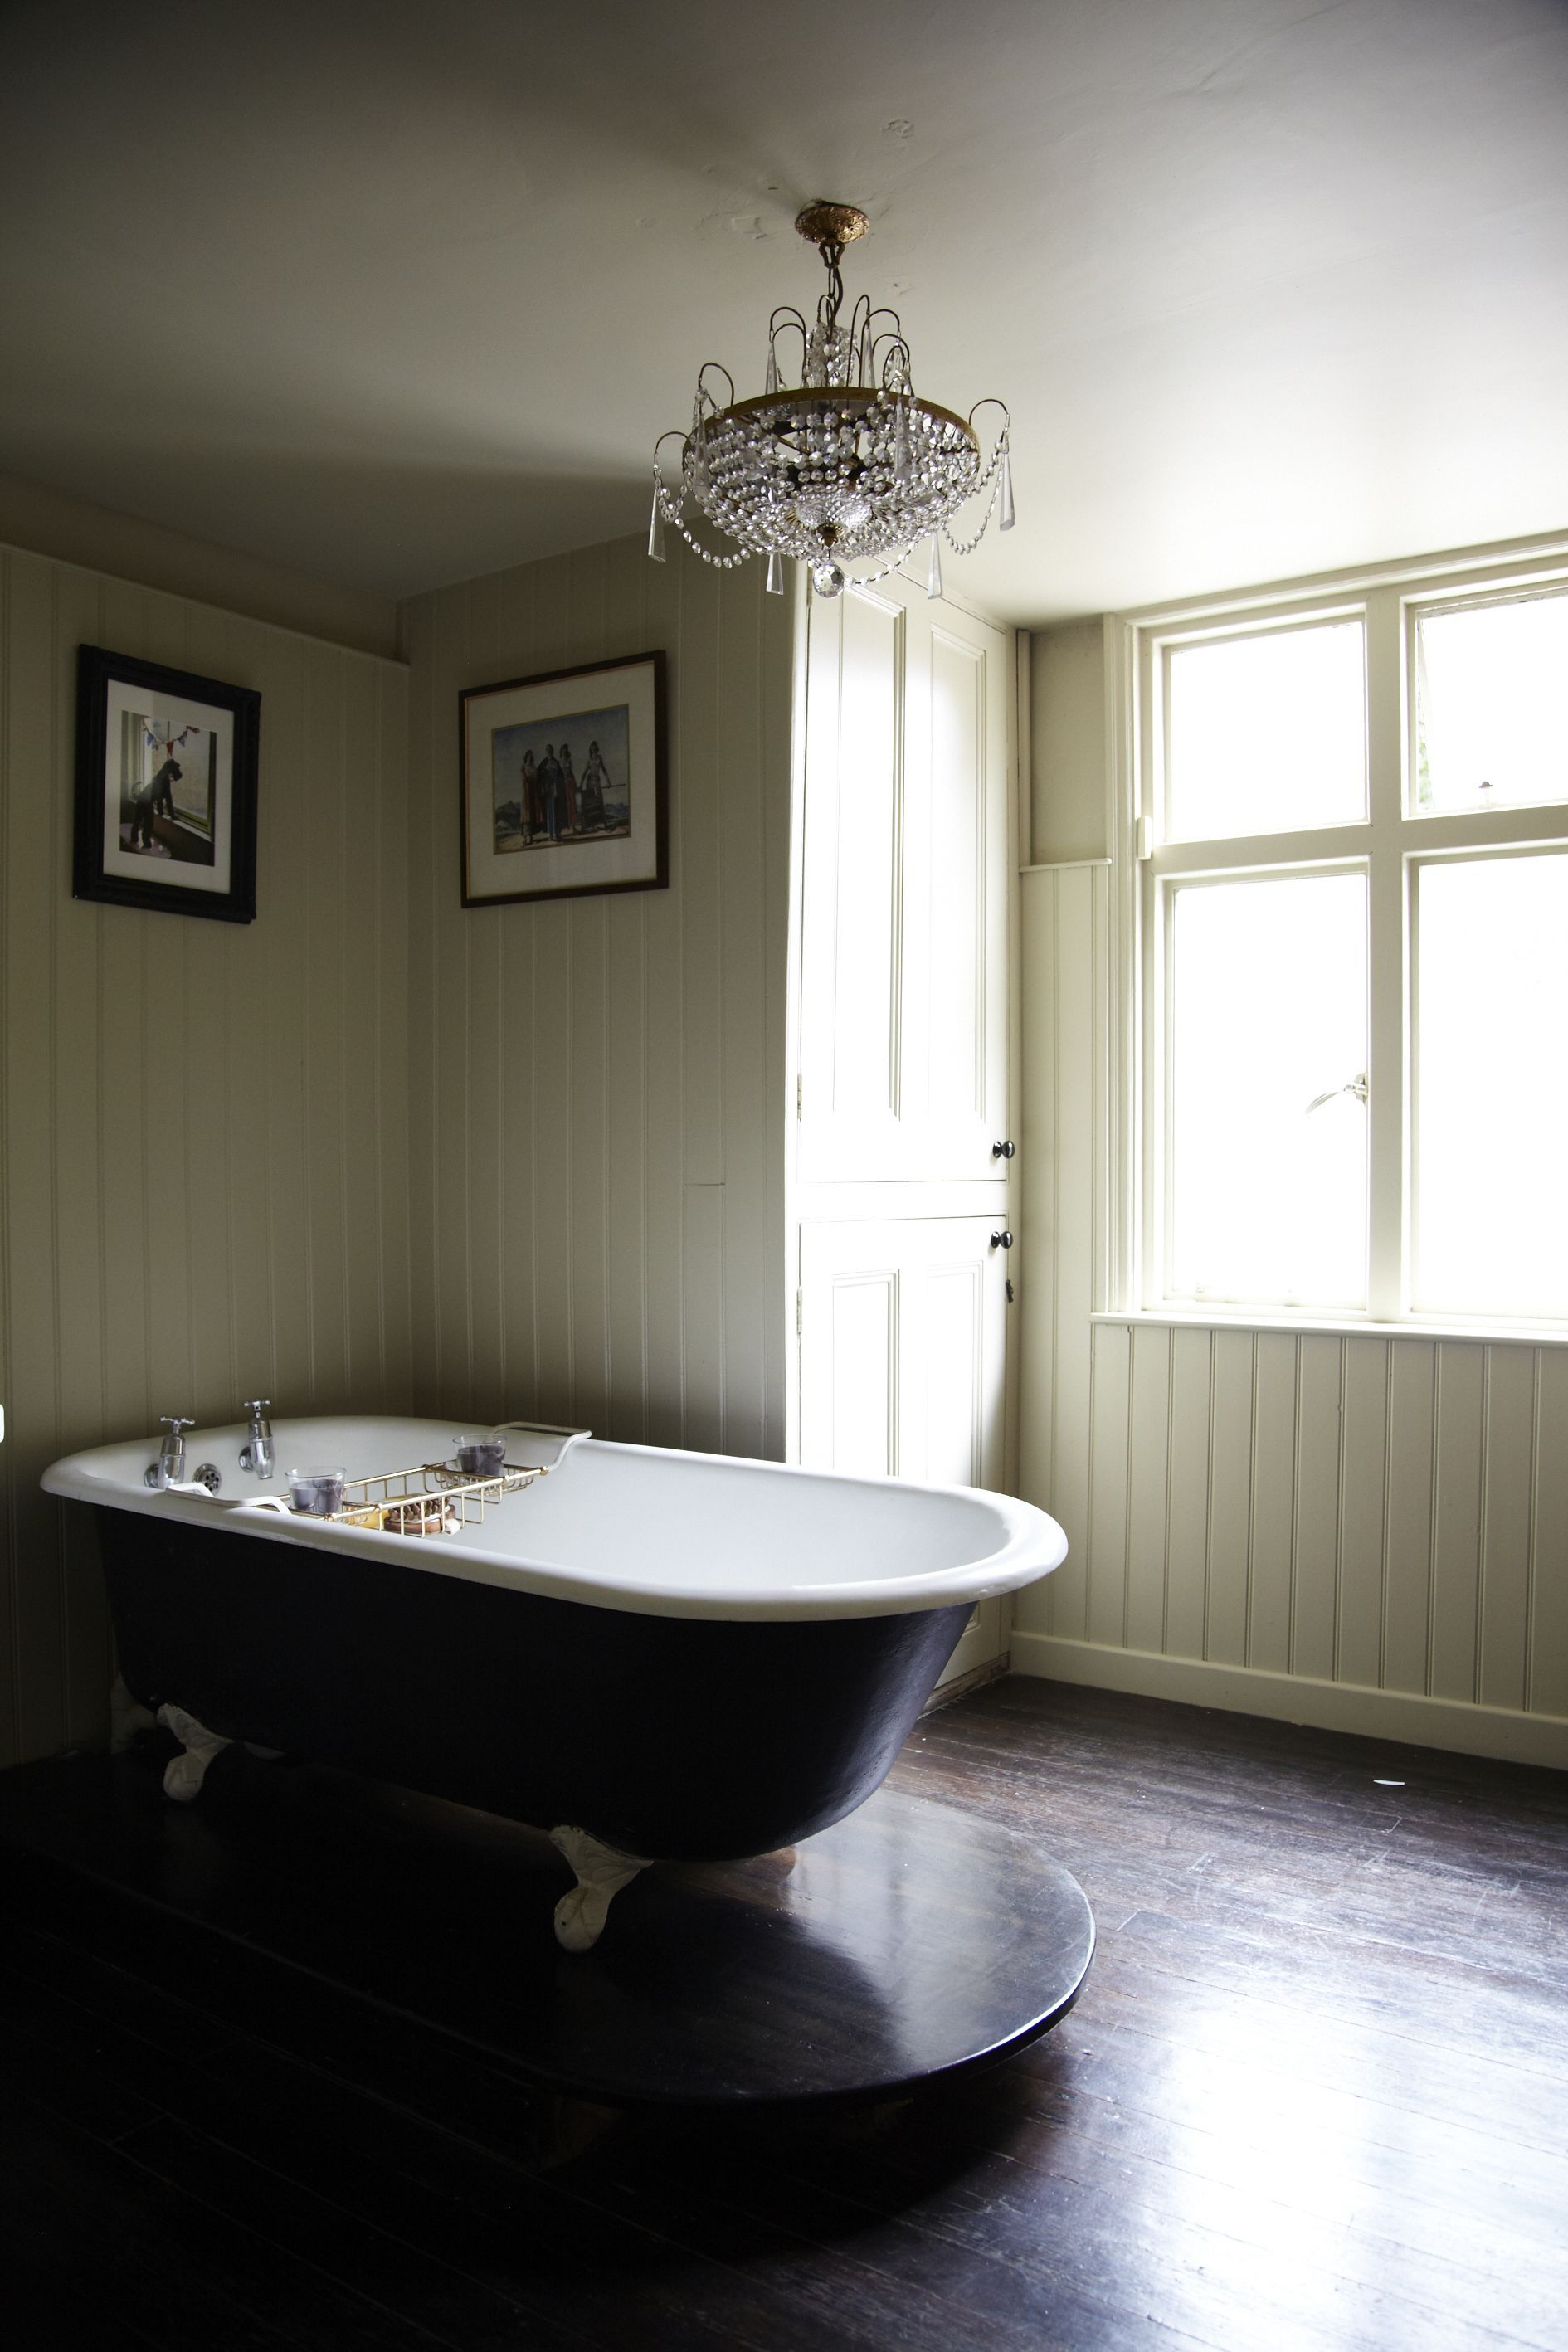 Tele Salle De Bain shootfactory: for all your photographic, tv and film